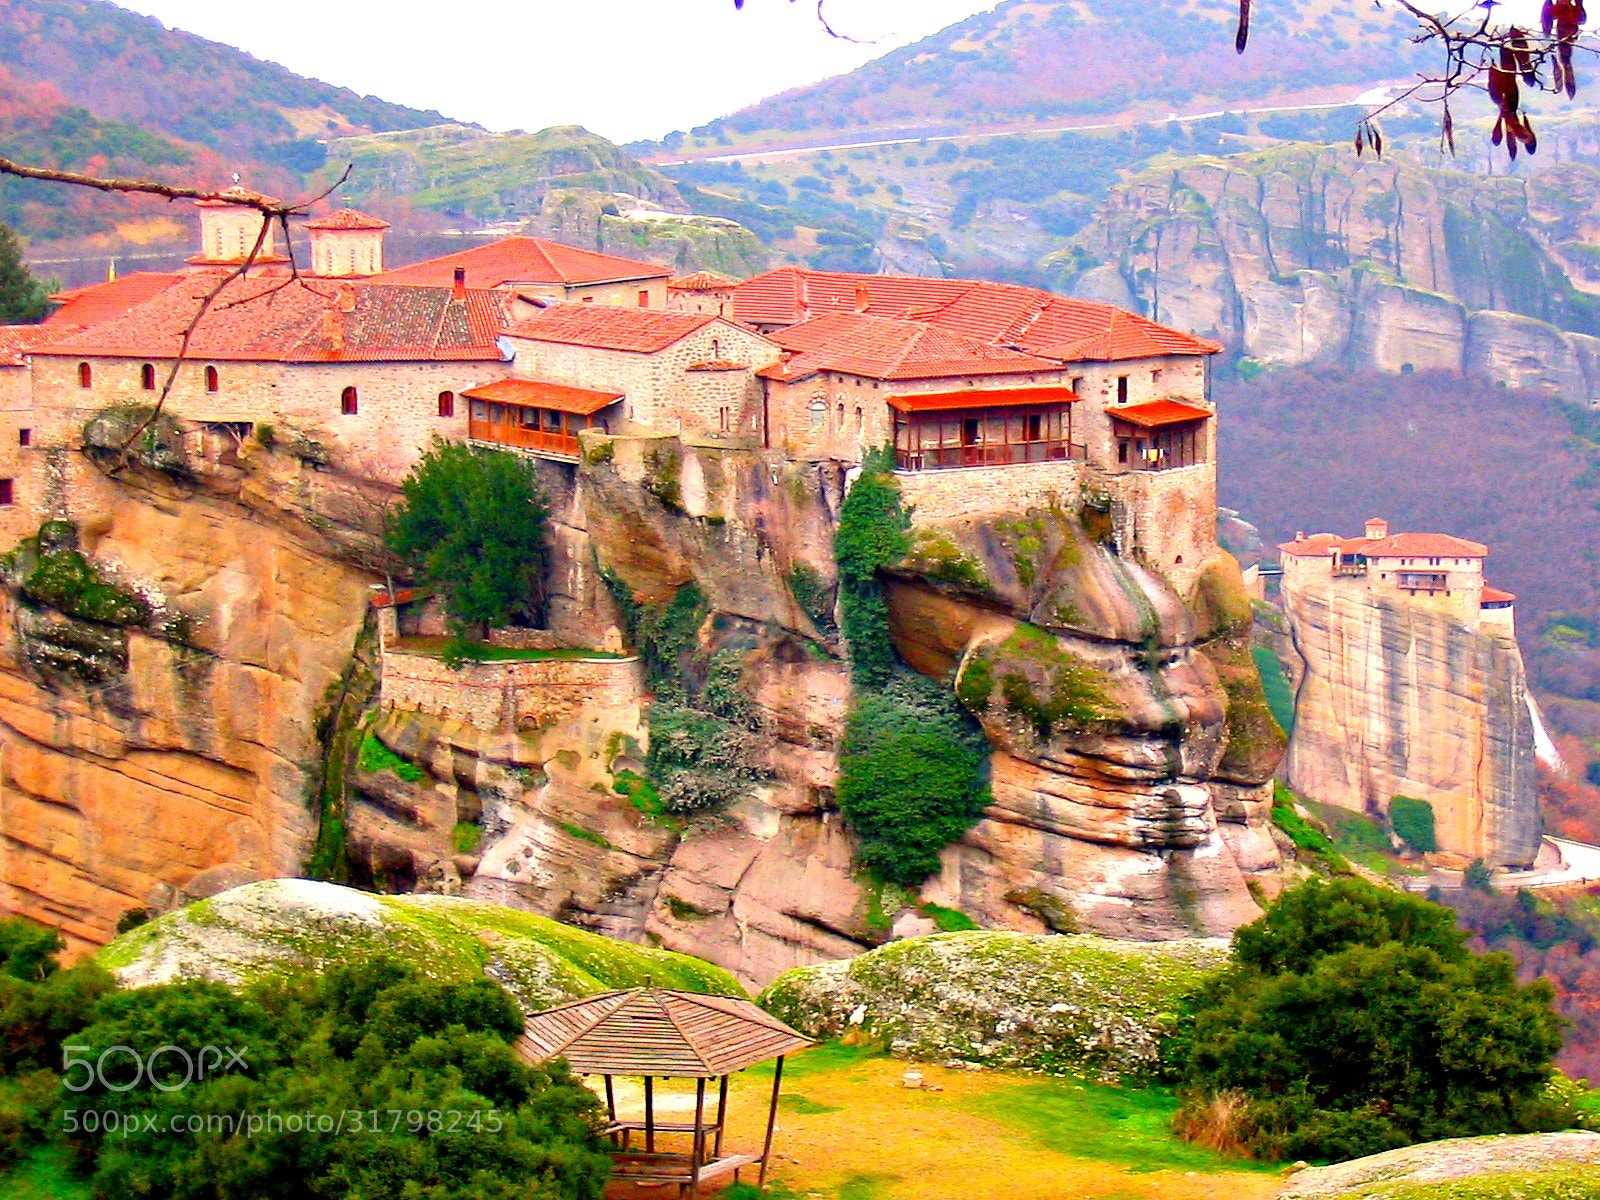 Photograph Meteora (2) by Septimiu Catona on 500px